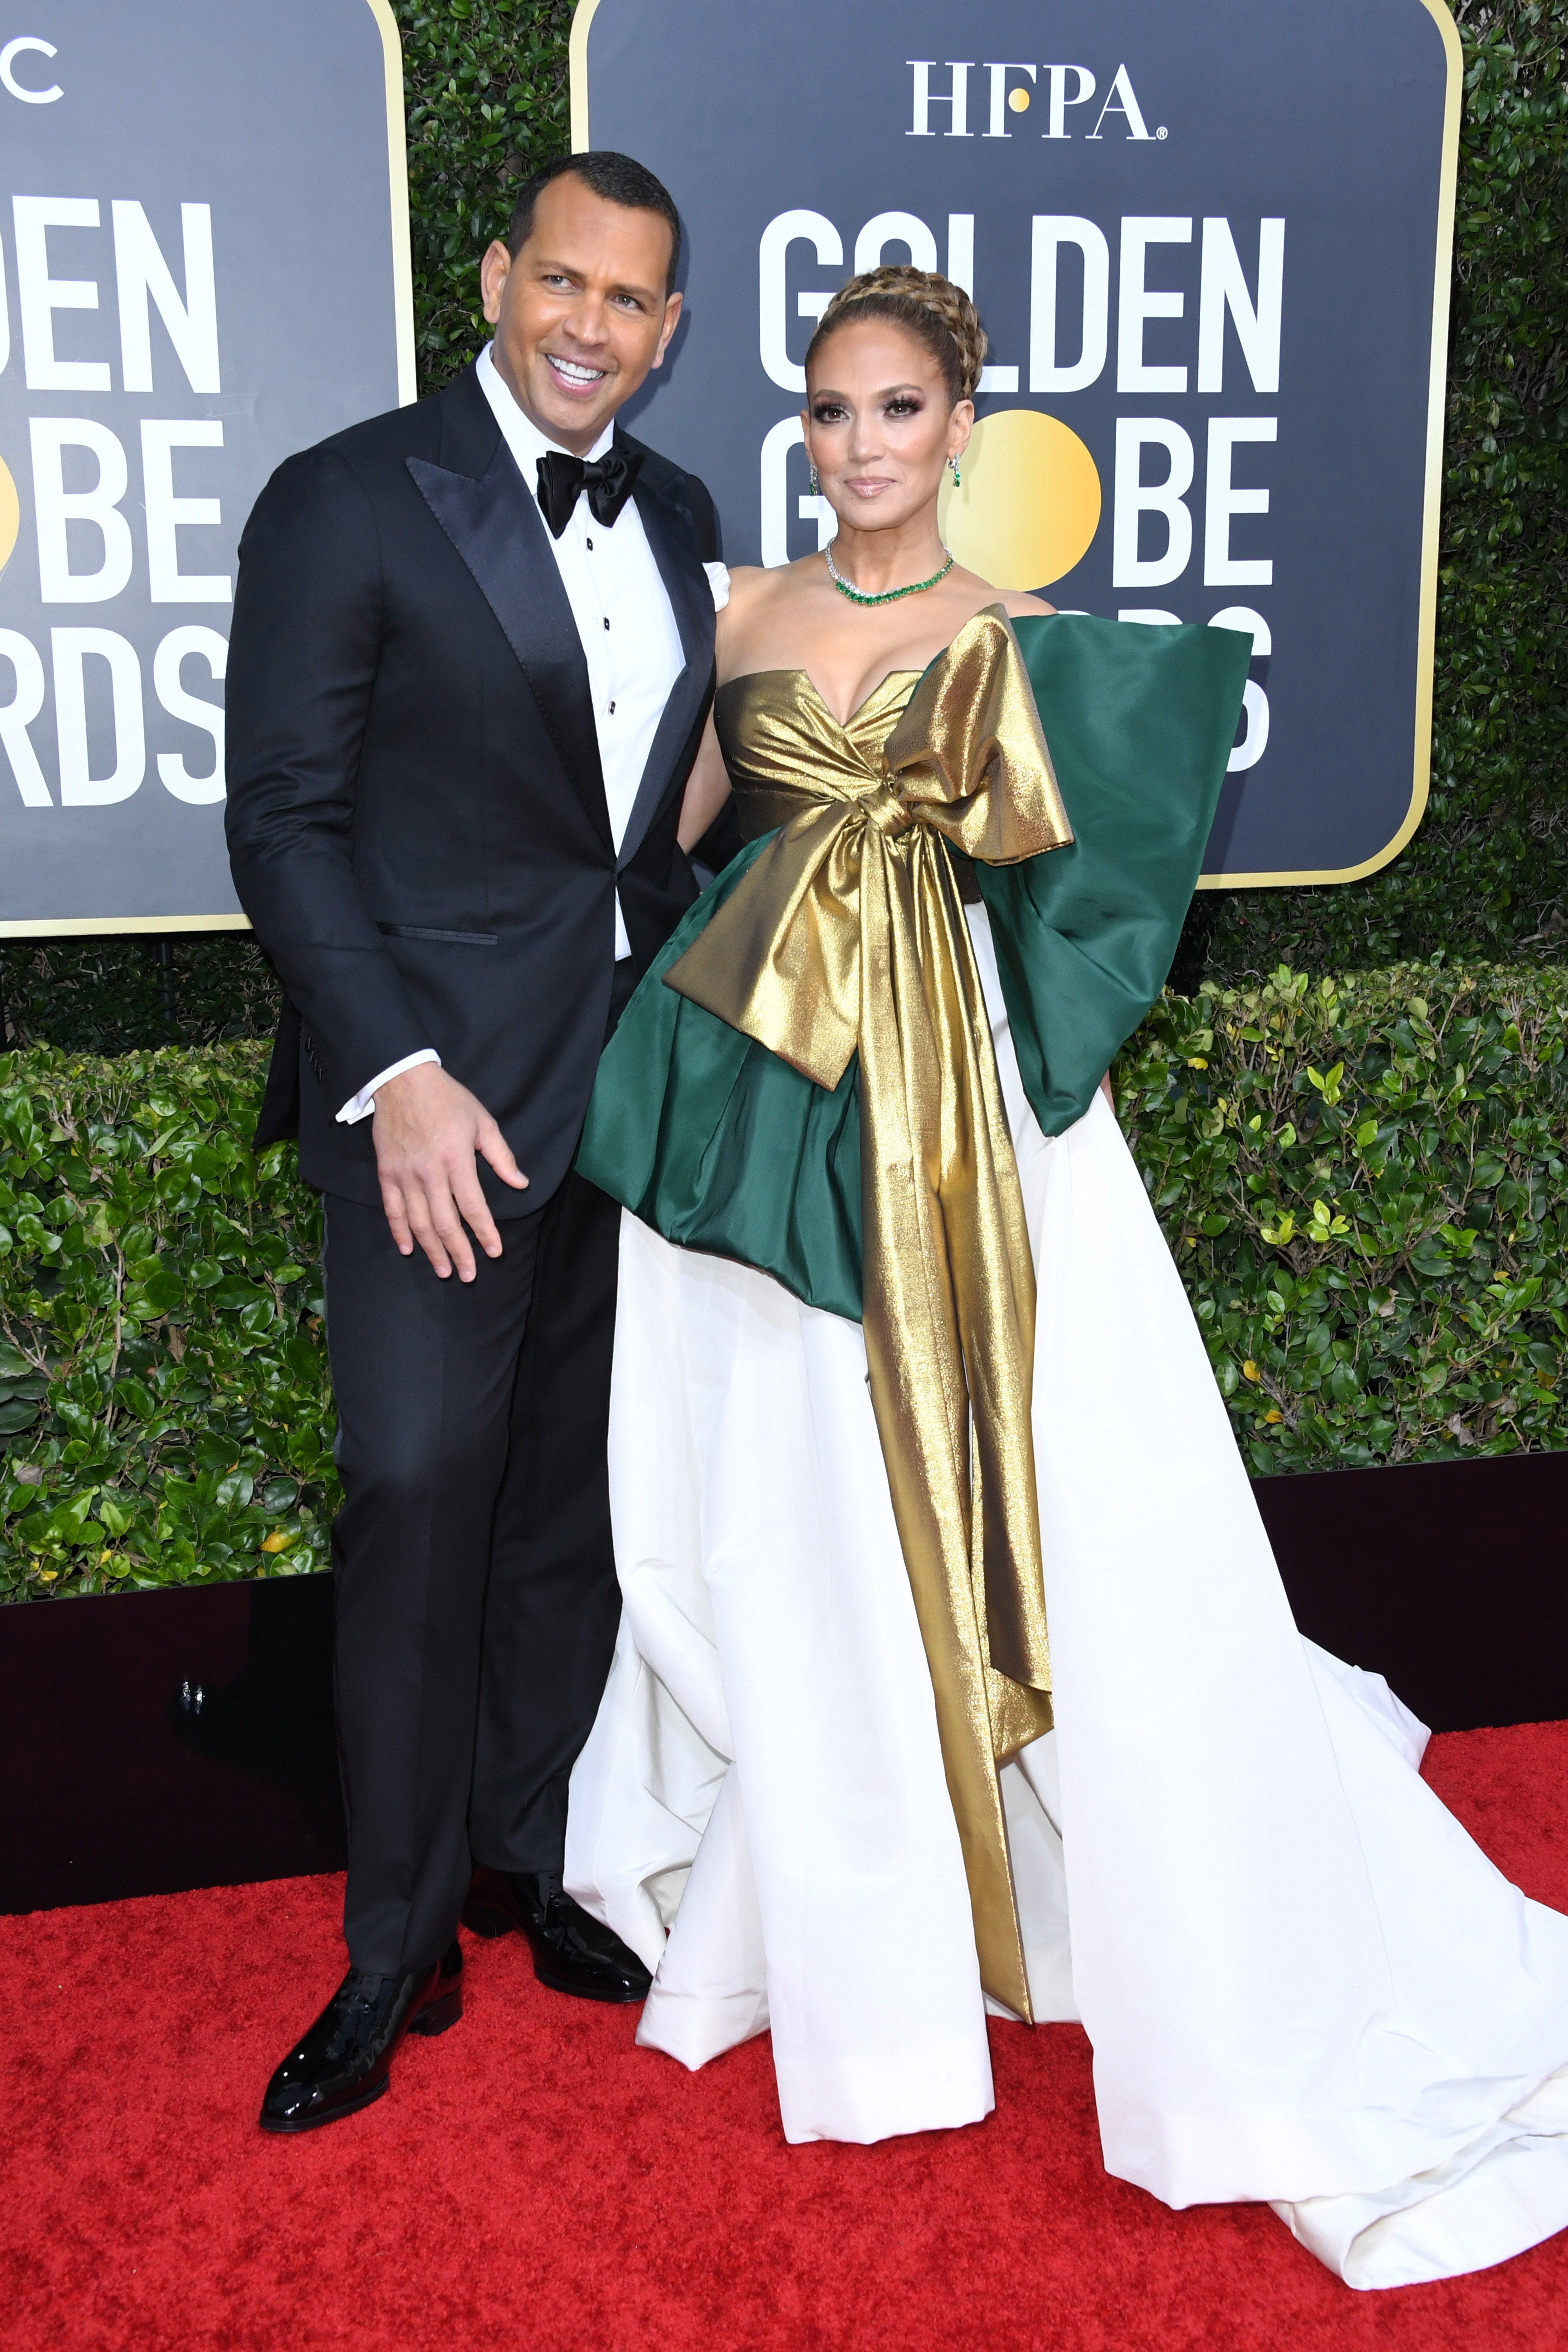 BEVERLY HILLS, CALIFORNIA - JANUARY 05: (L-R) Alex Rodriguez and Jennifer Lopez attend the 77th Annual Golden Globe Awards at The Beverly Hilton Hotel on January 05, 2020 in Beverly Hills, California. (Photo by Jon Kopaloff/Getty Images)